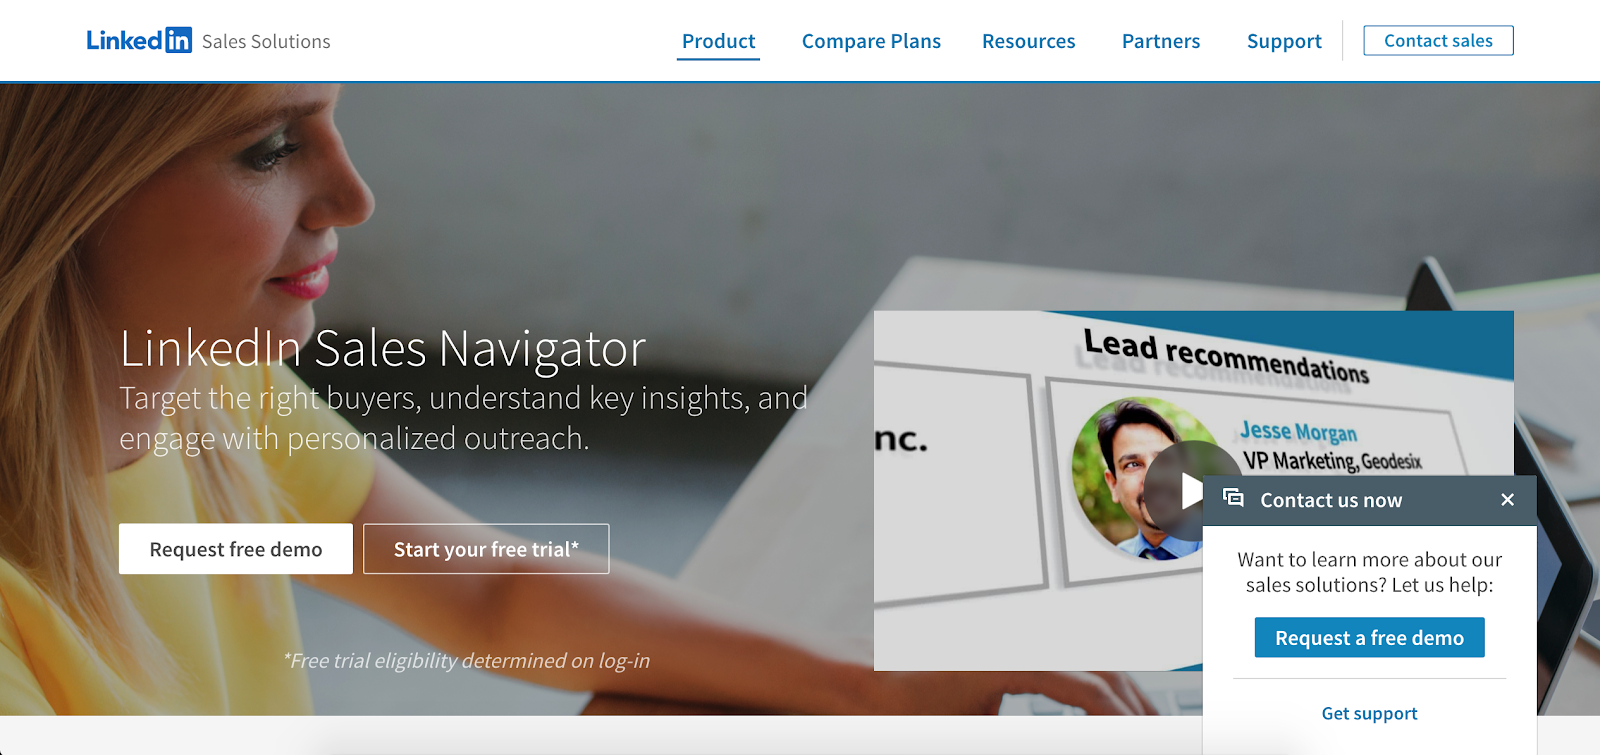 LinkedIn Sales Navigator is the ninth Best B2B Lead Generation Tool example | The article is 21 of the Best B2B Lead Generation Tools for 2020